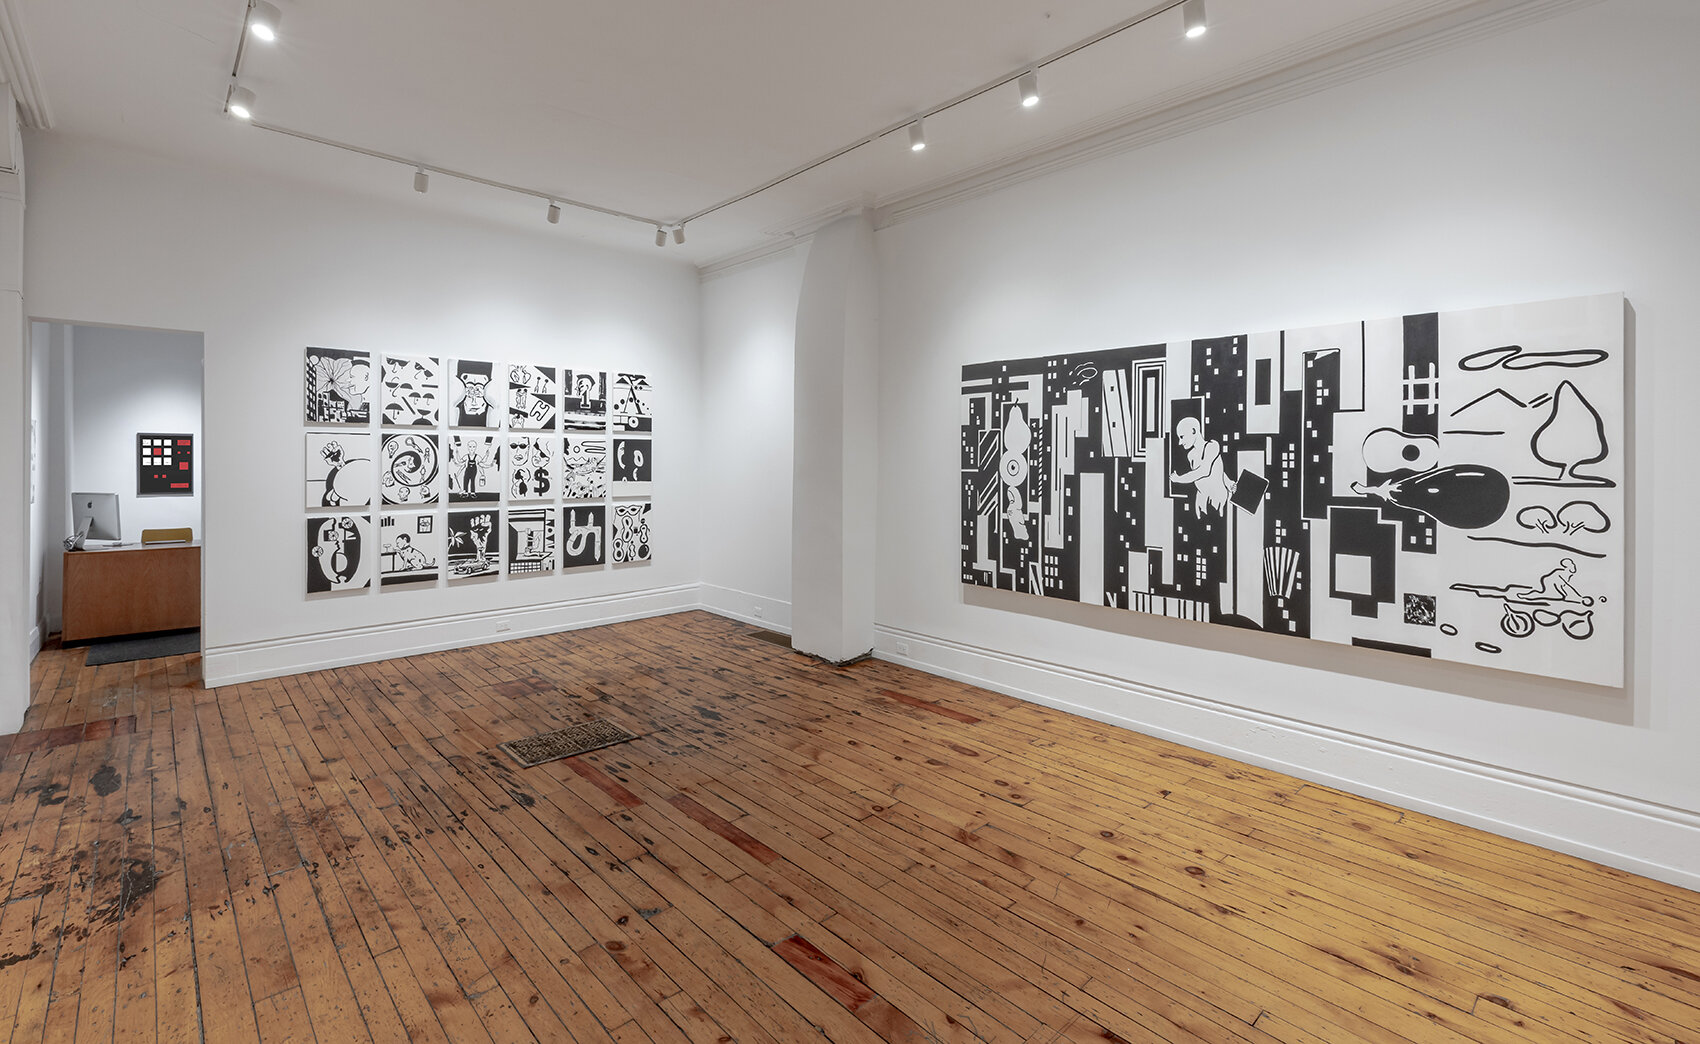 Isaac Midnight Repairs 2019 installation view 4  Low Res.jpg